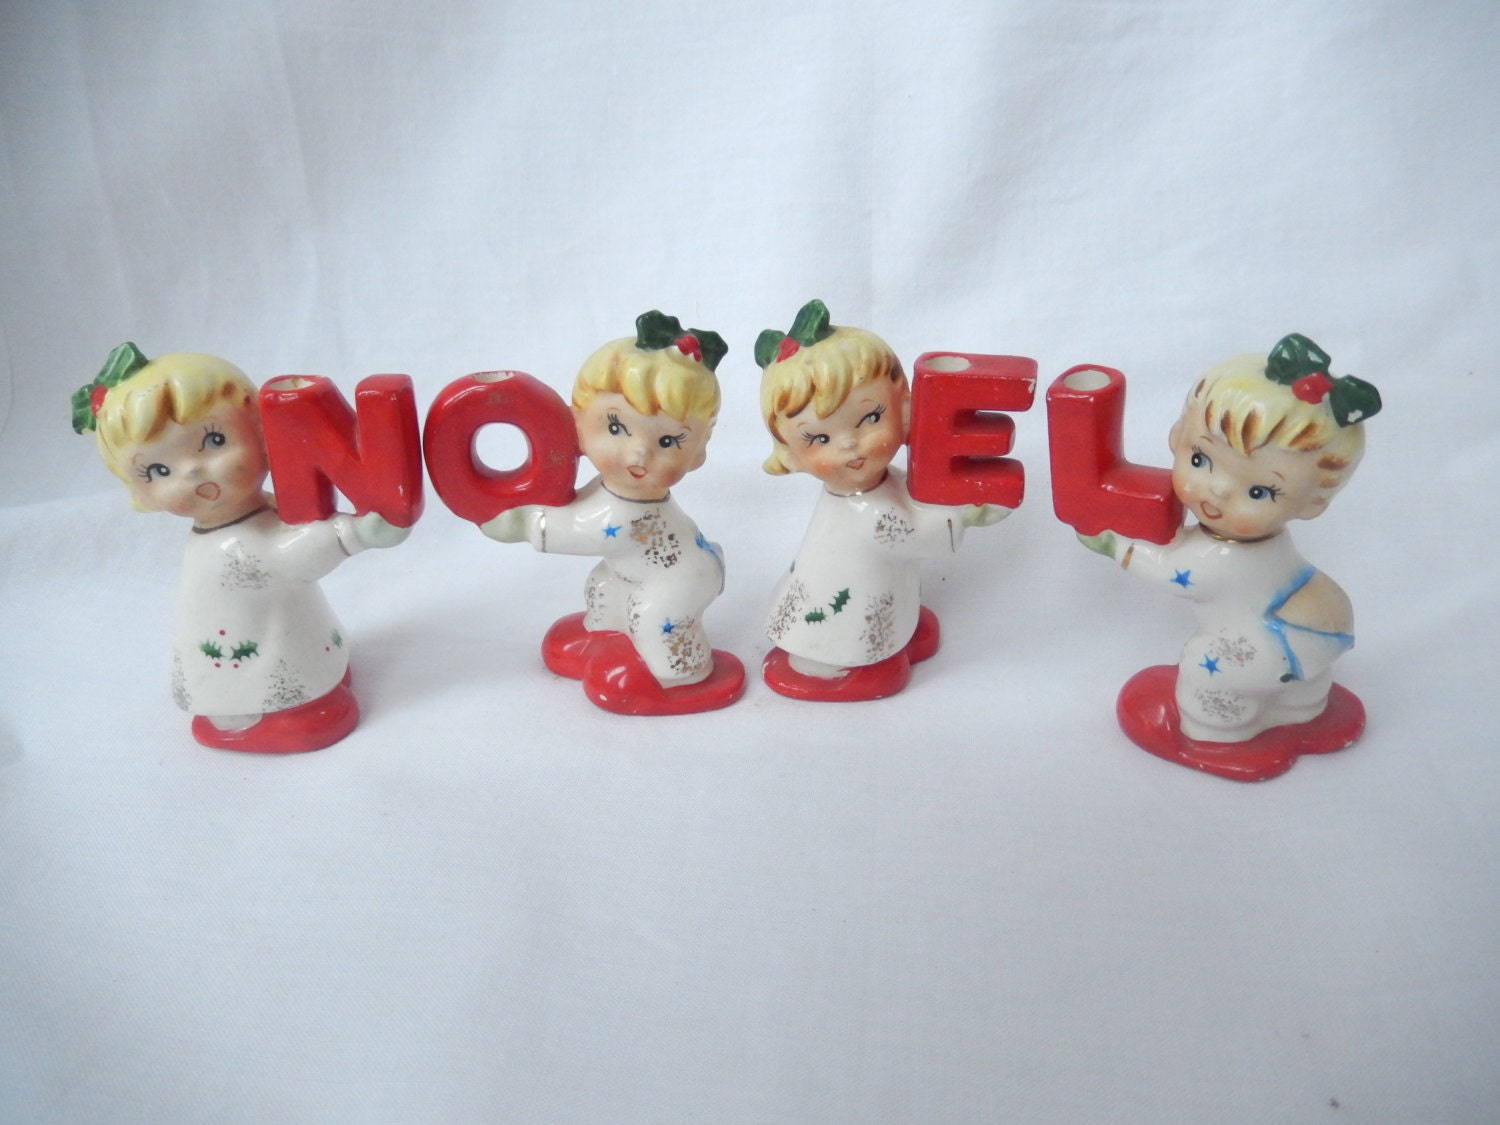 Napco noel figurines vintage christmas decor